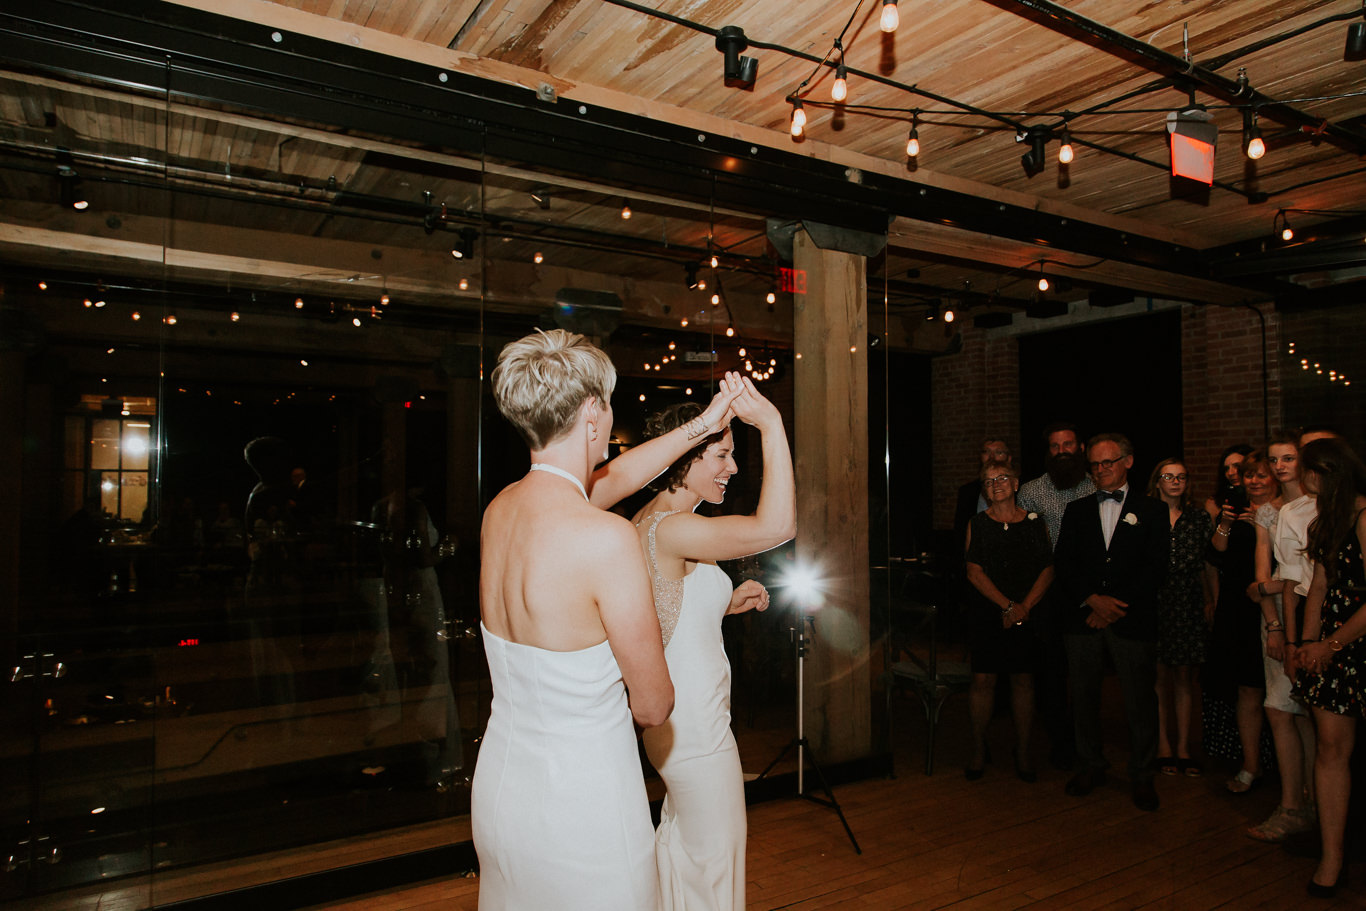 Lindsay-and-Heather-Charbar-Restaurant-Wedding-in-Calgary-209